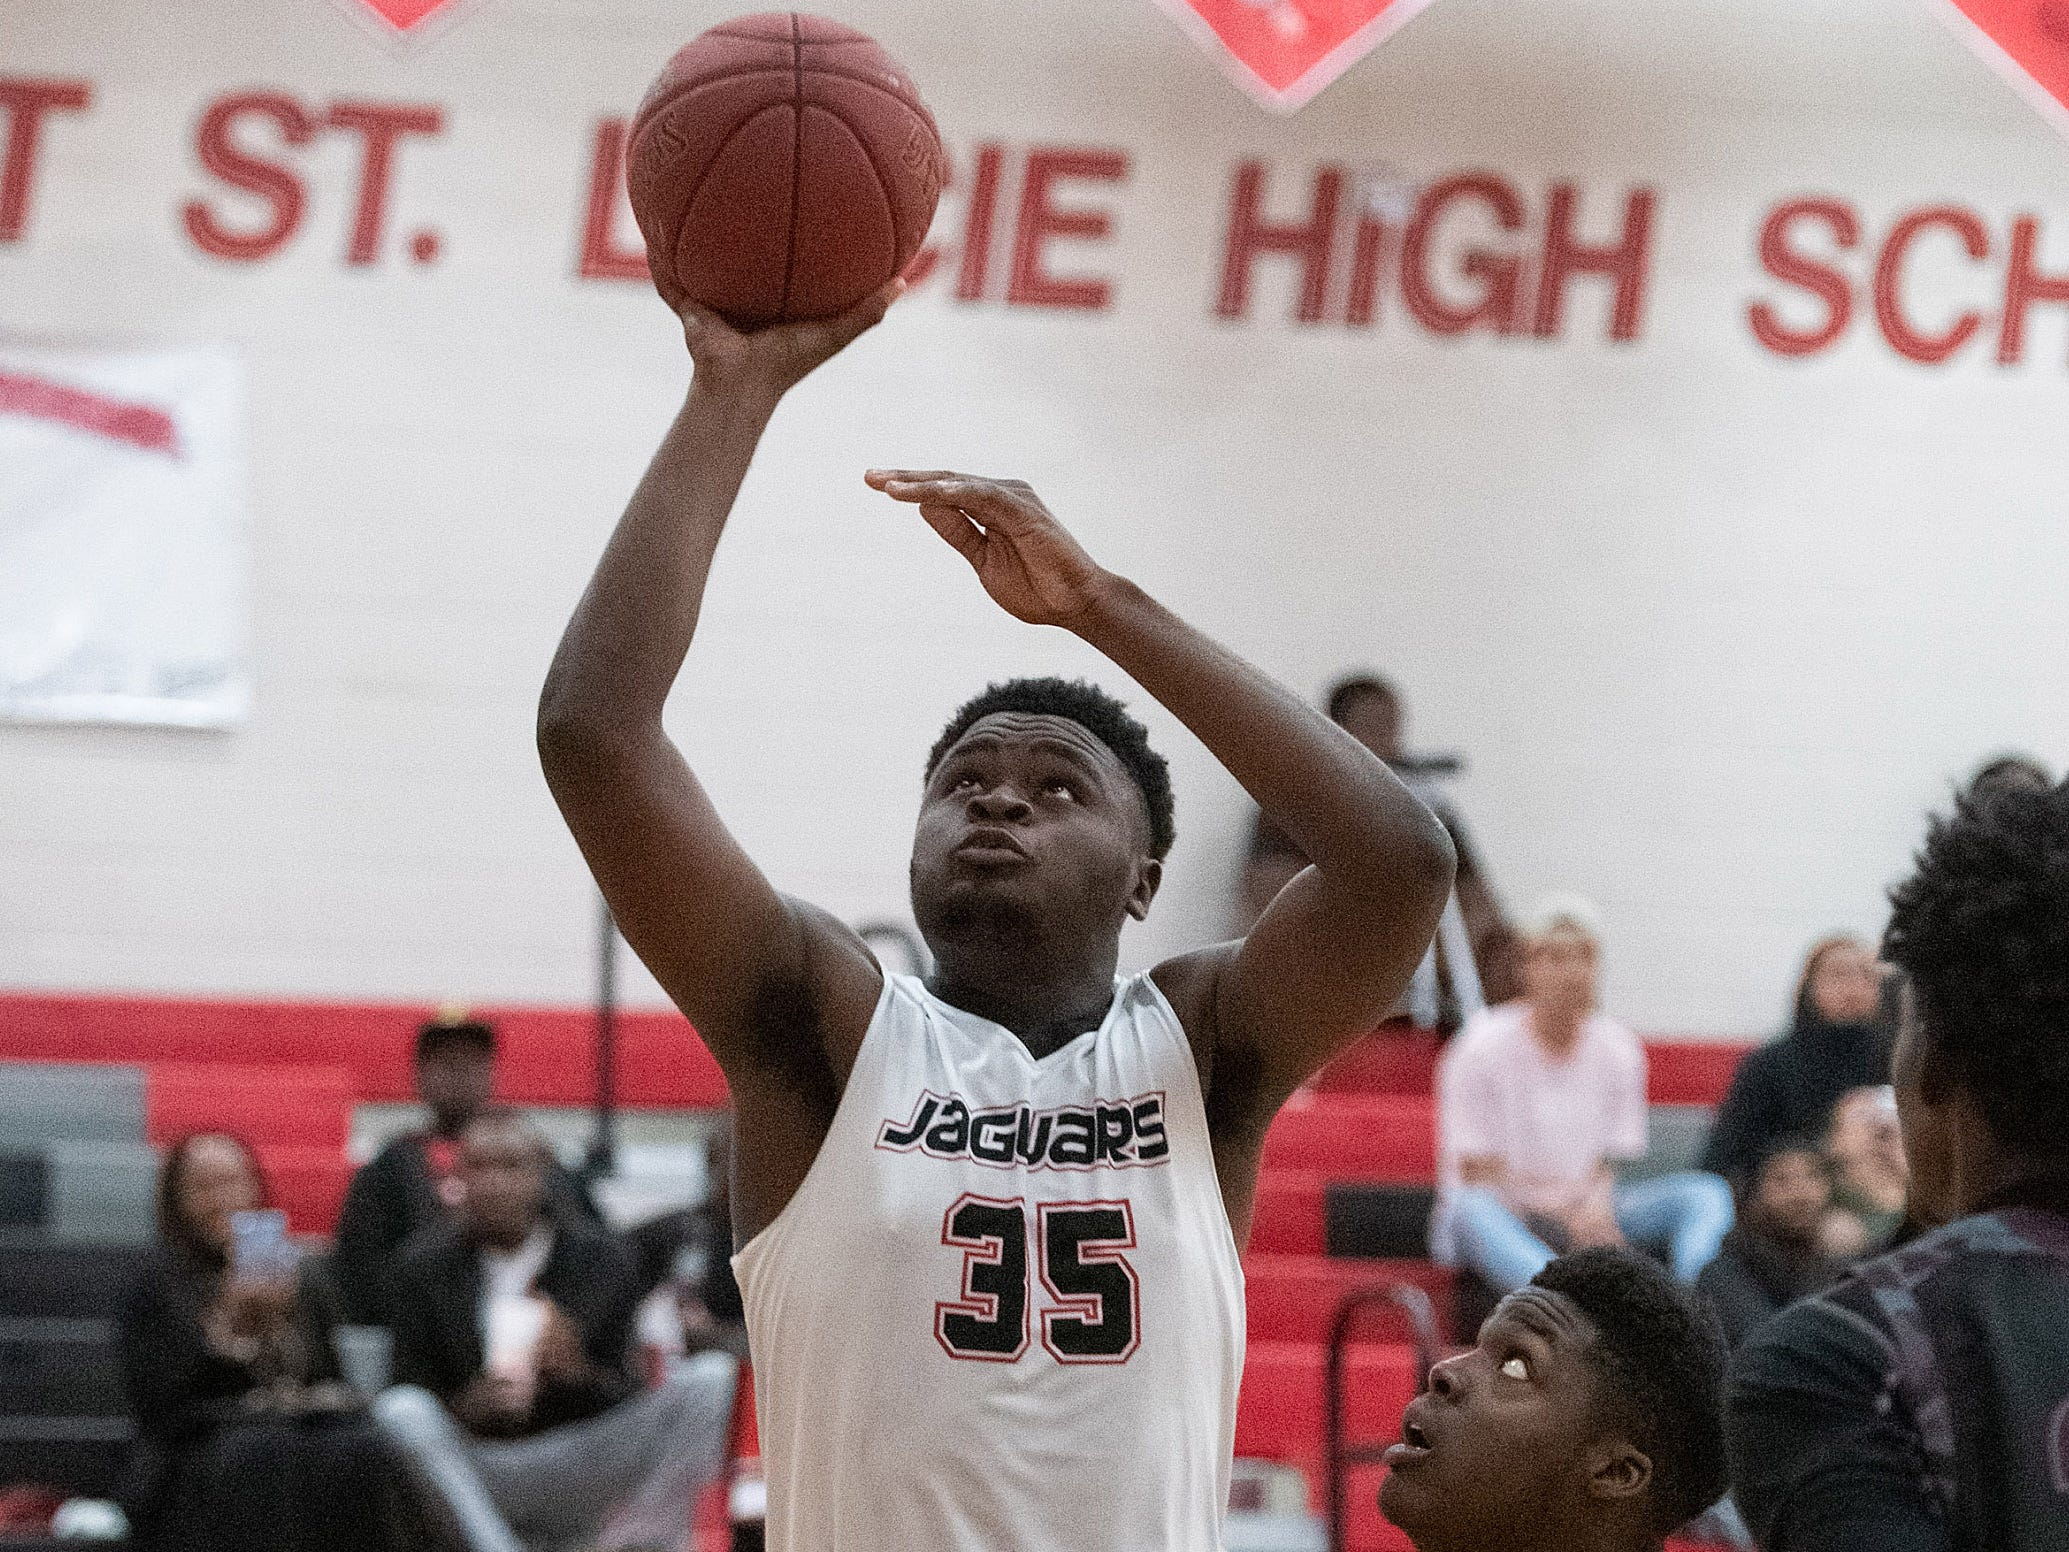 Port St. Lucie's Daniel King puts a shot past Fort Pierce Westwood's defense in the second half of their game at Port St. Lucie High School on Tuesday, Jan. 29, 2019, in Port St. Lucie.